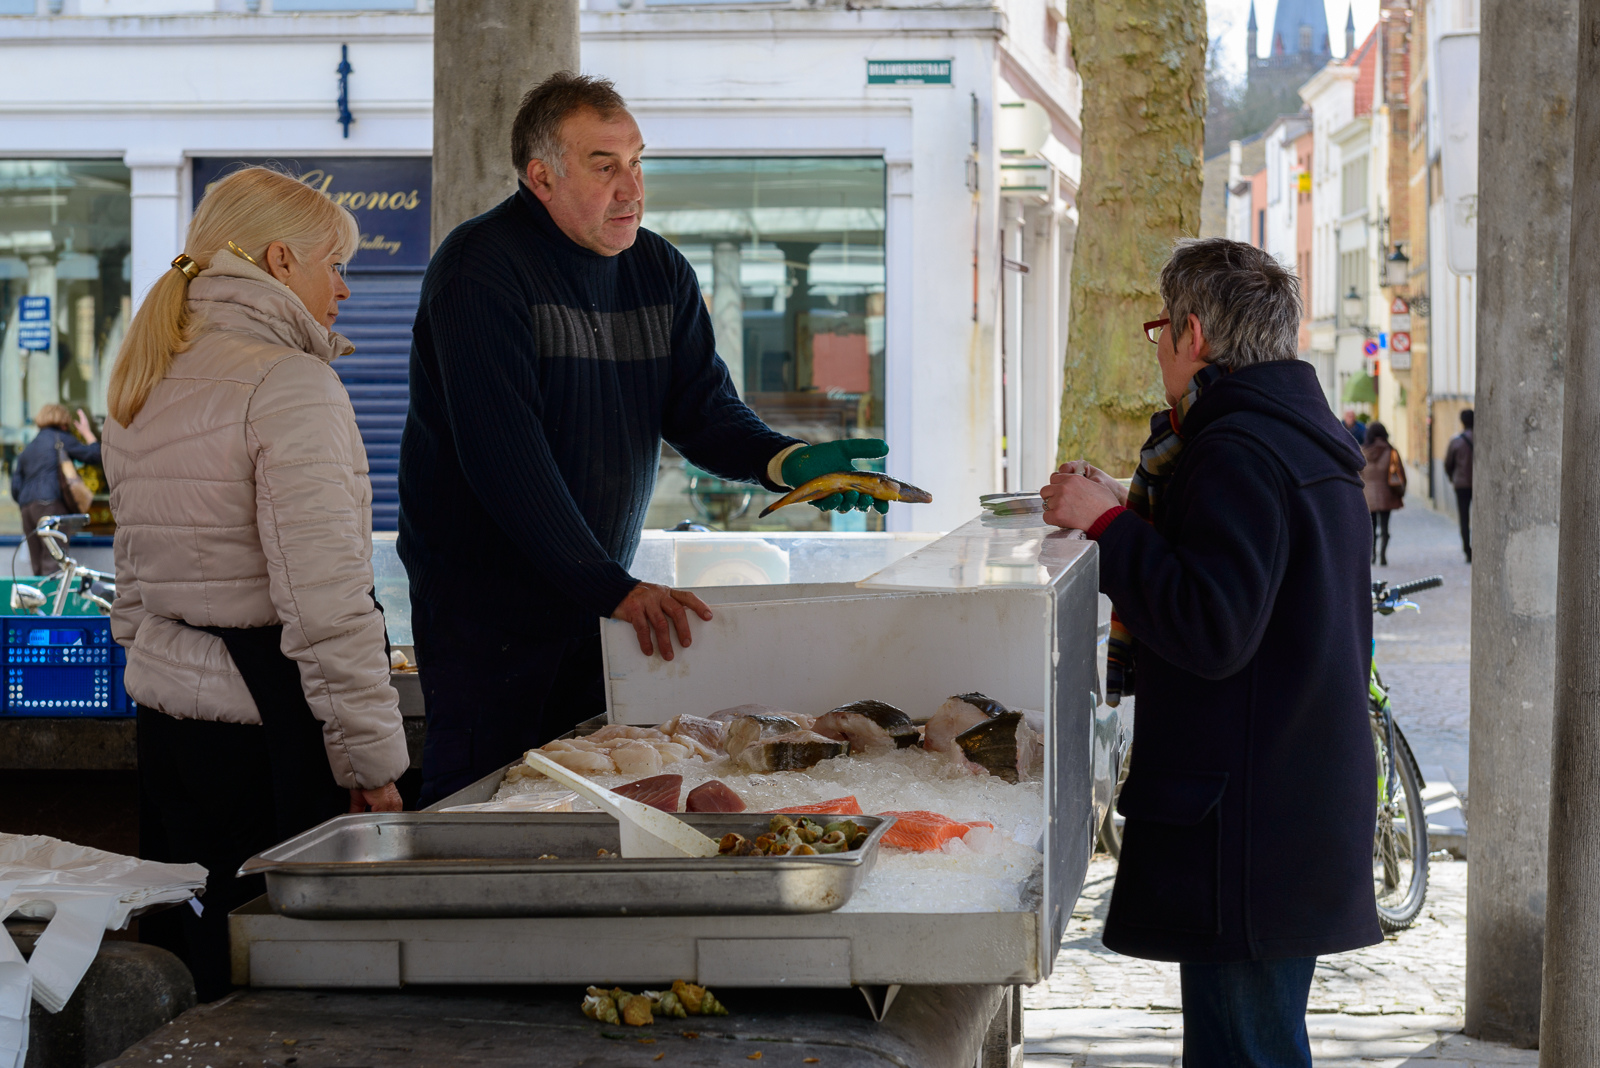 Vismarkt or 'Fish Market' | © André P. Meyer-Vitali / Flickr